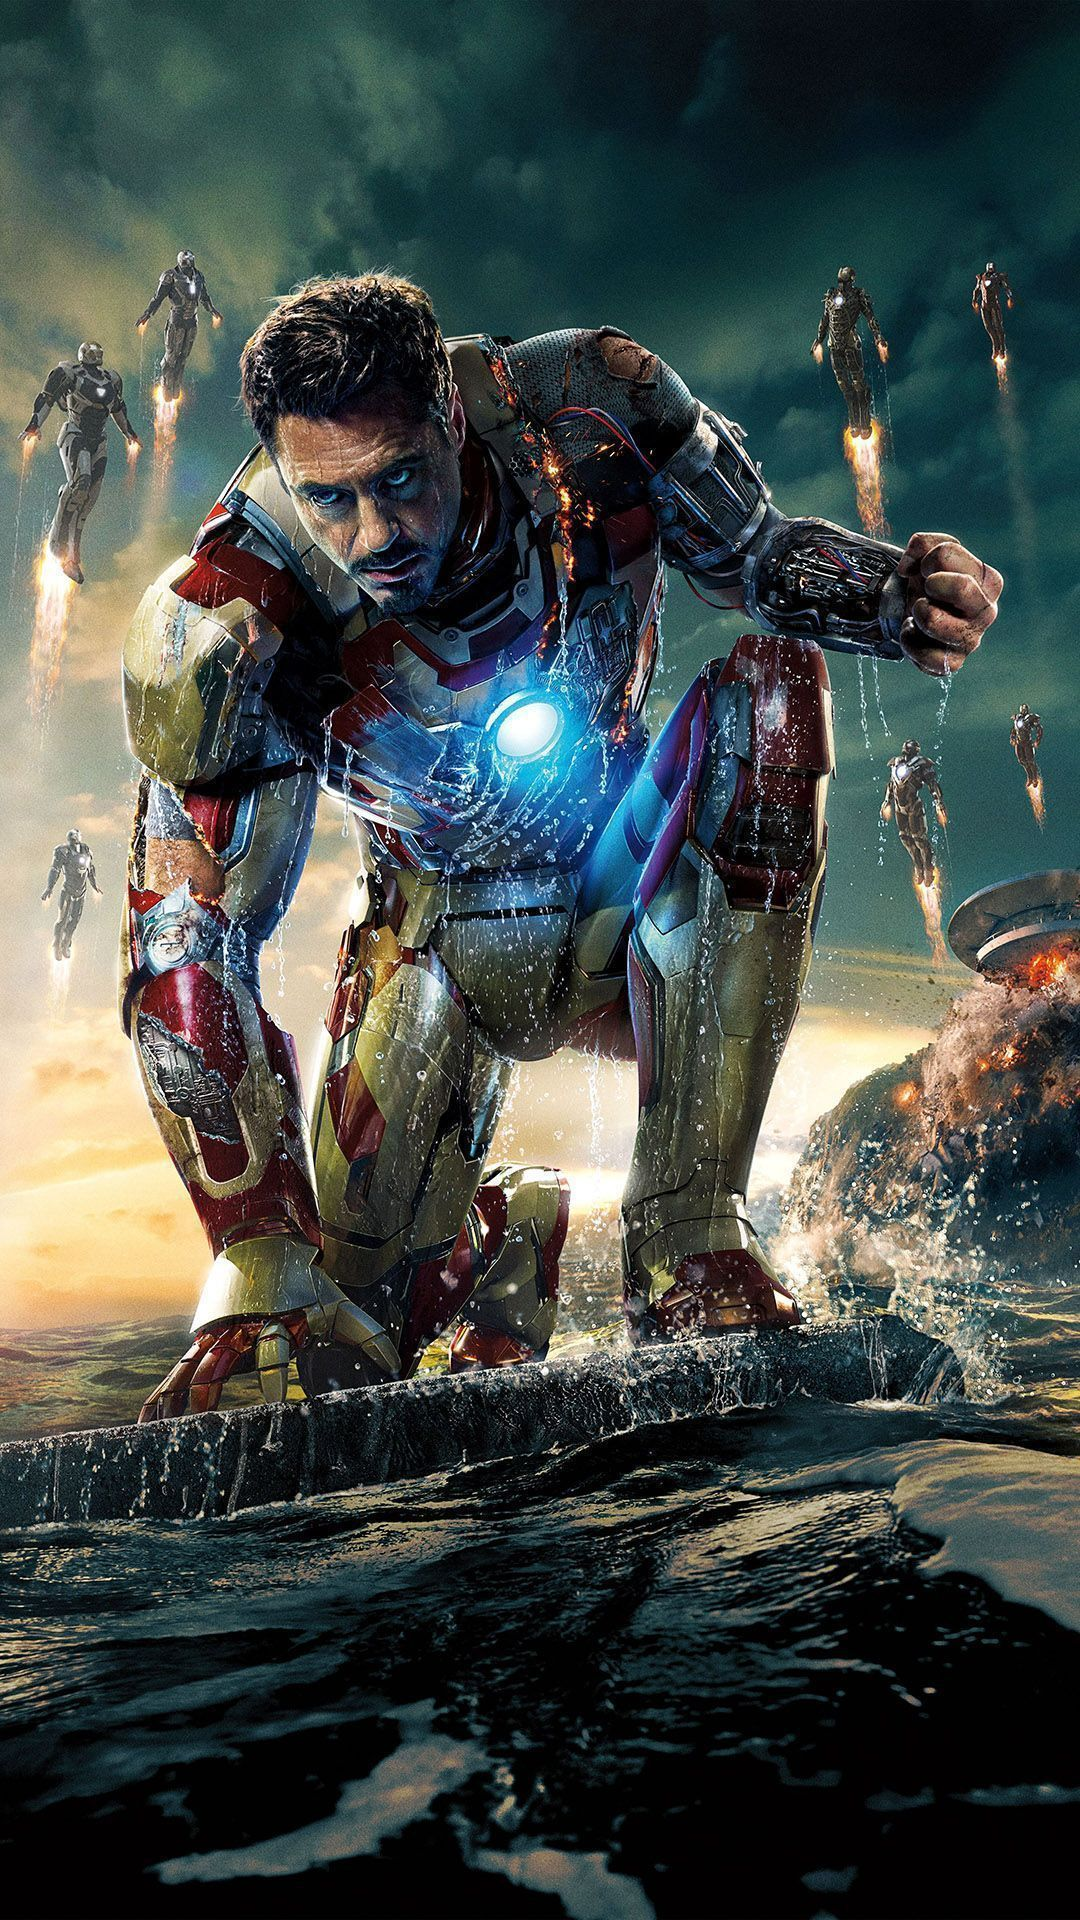 Mobile Wallpapers Is A One Stop Solution For All Your Mobile Needs Gets Best Quality Hd Wallpapers Backgroun Marvel Images Marvel Wallpaper Iron Man Wallpaper Full hd avengers wallpaper hd for mobile